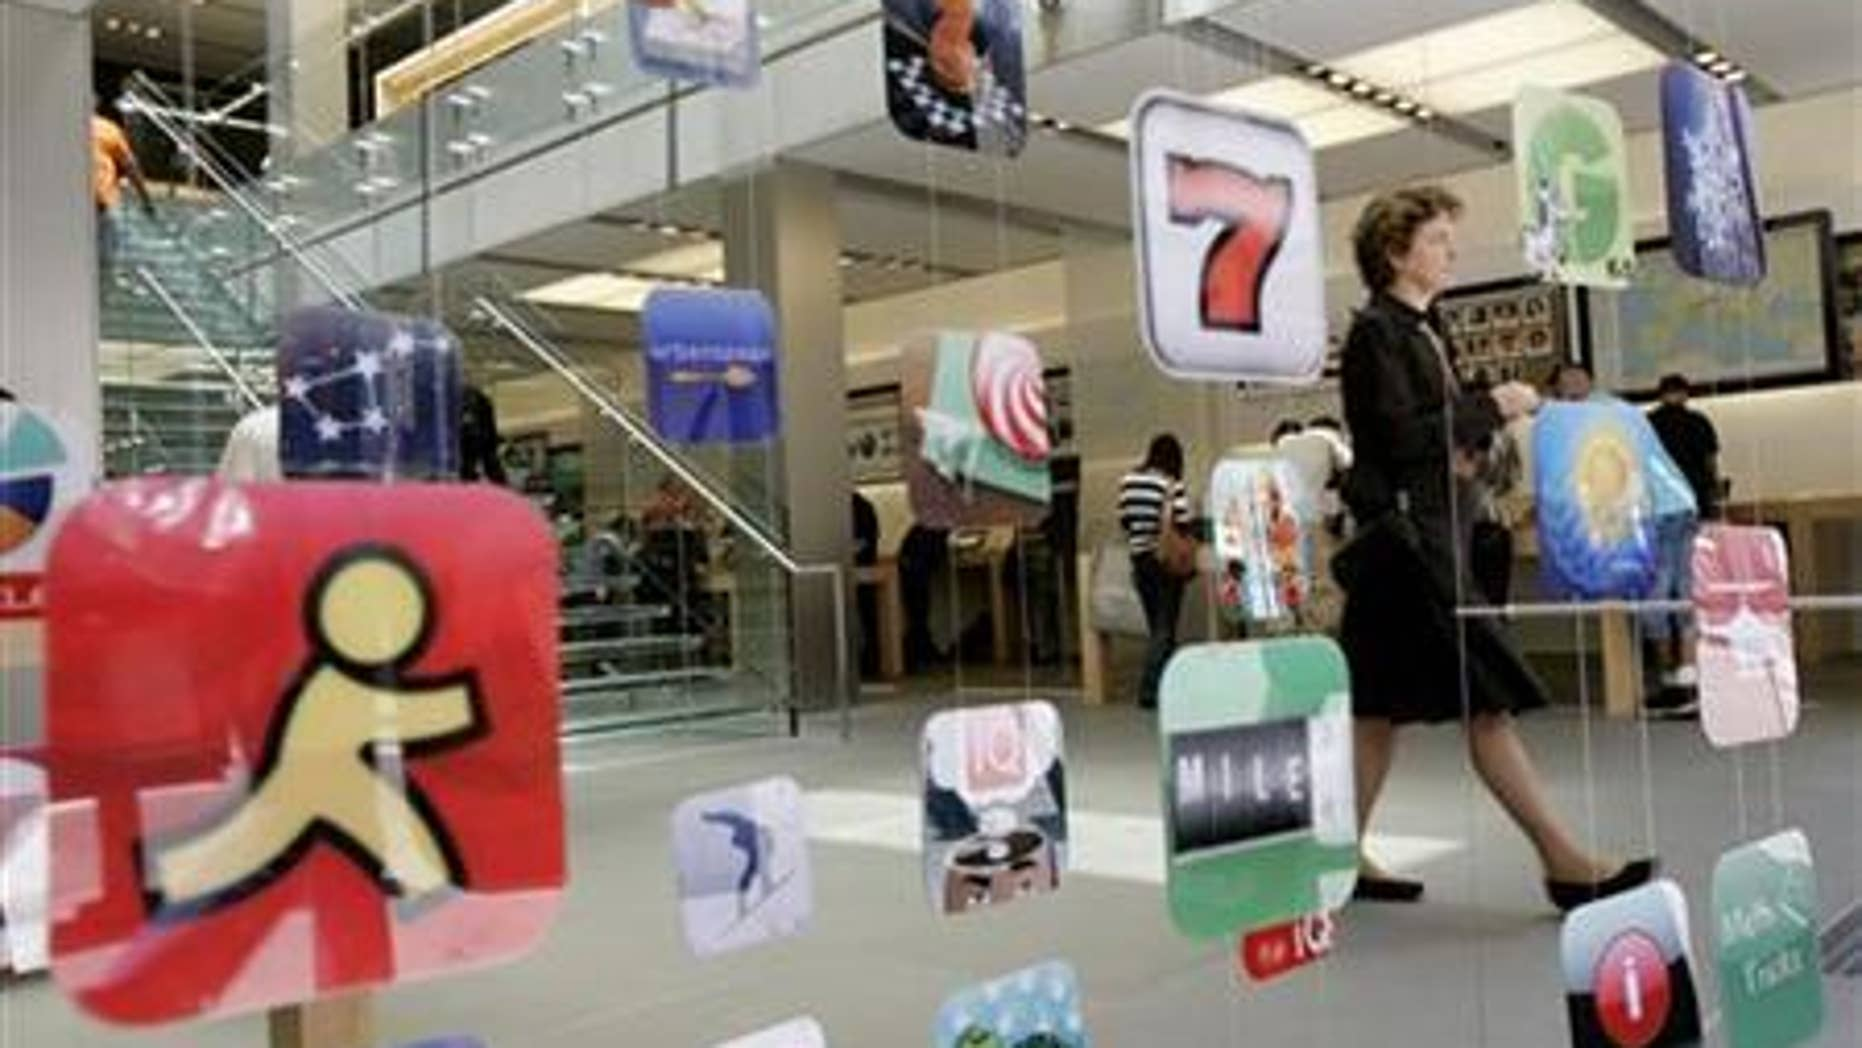 A woman walks past icons for Apple applications at the company's retail store in San Francisco, California.